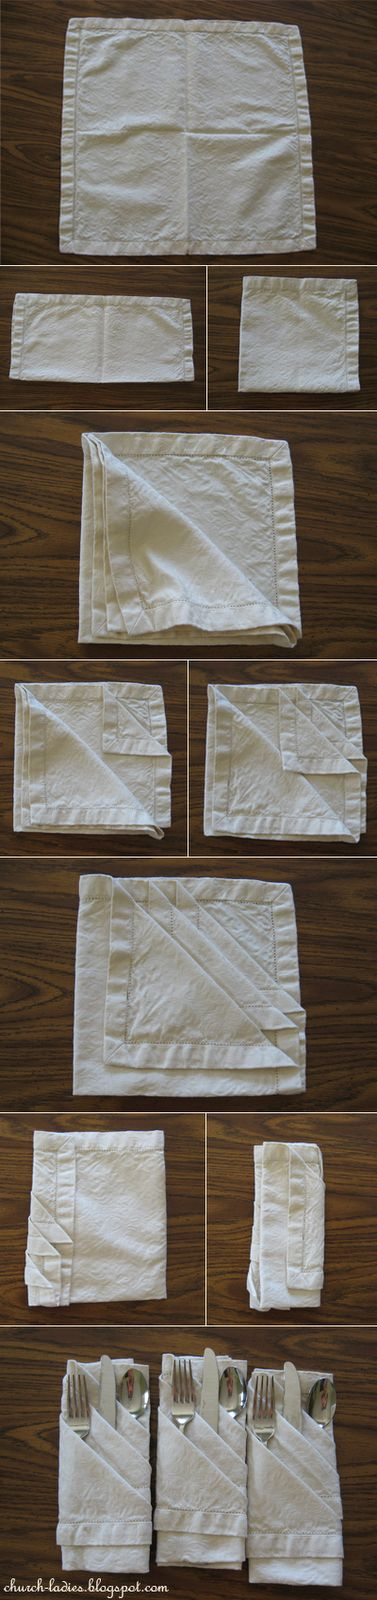 Napkin tutorial.